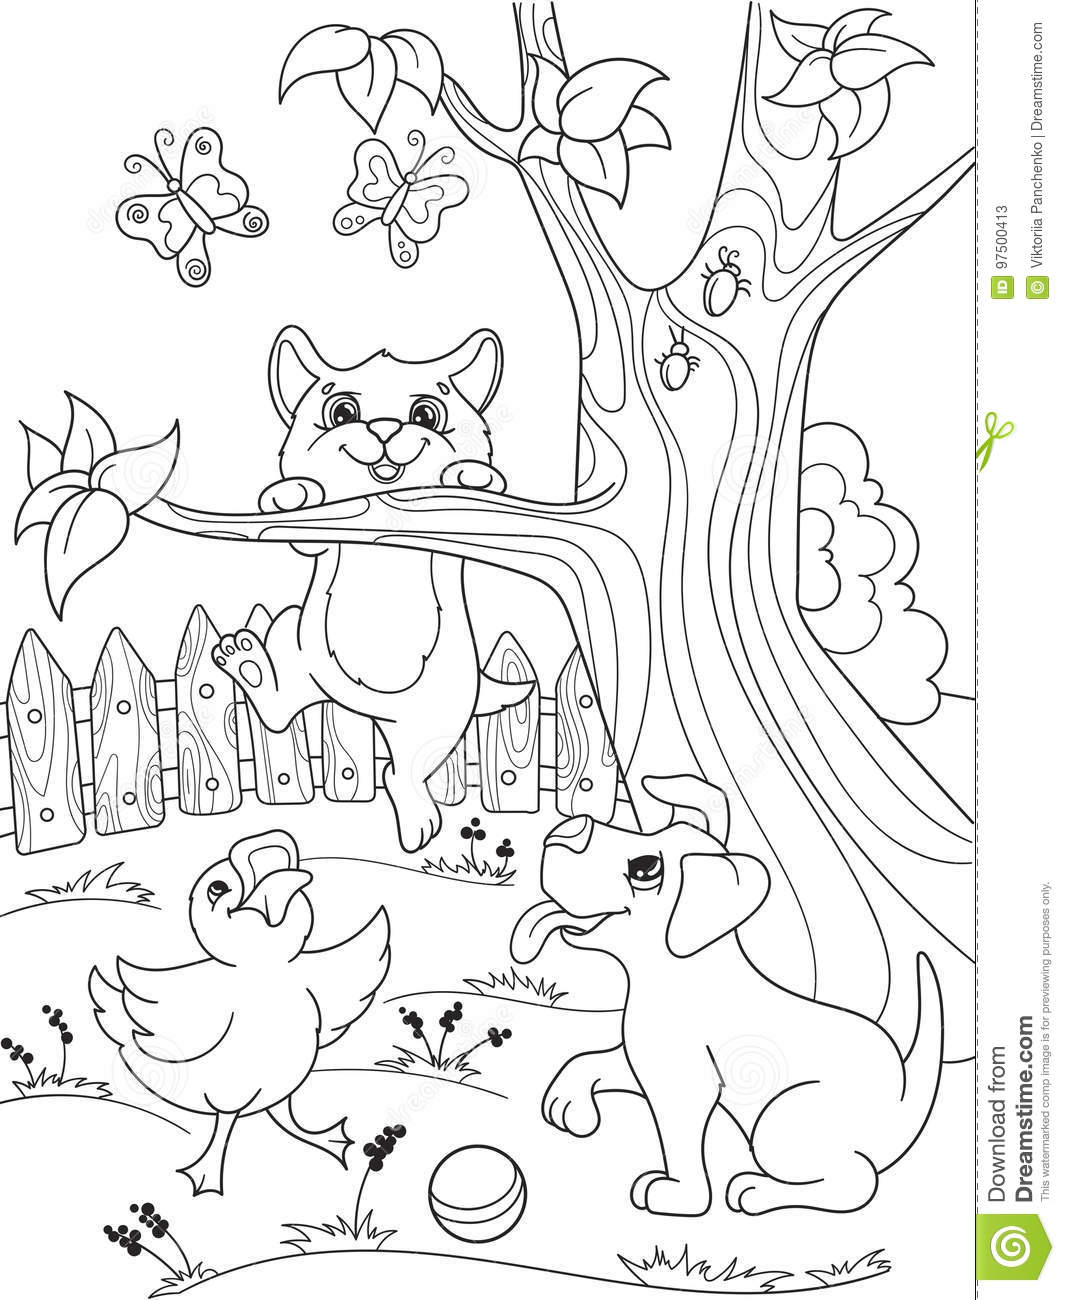 Childrens coloring cartoon animals friends in nature duckling puppy and kitten duck